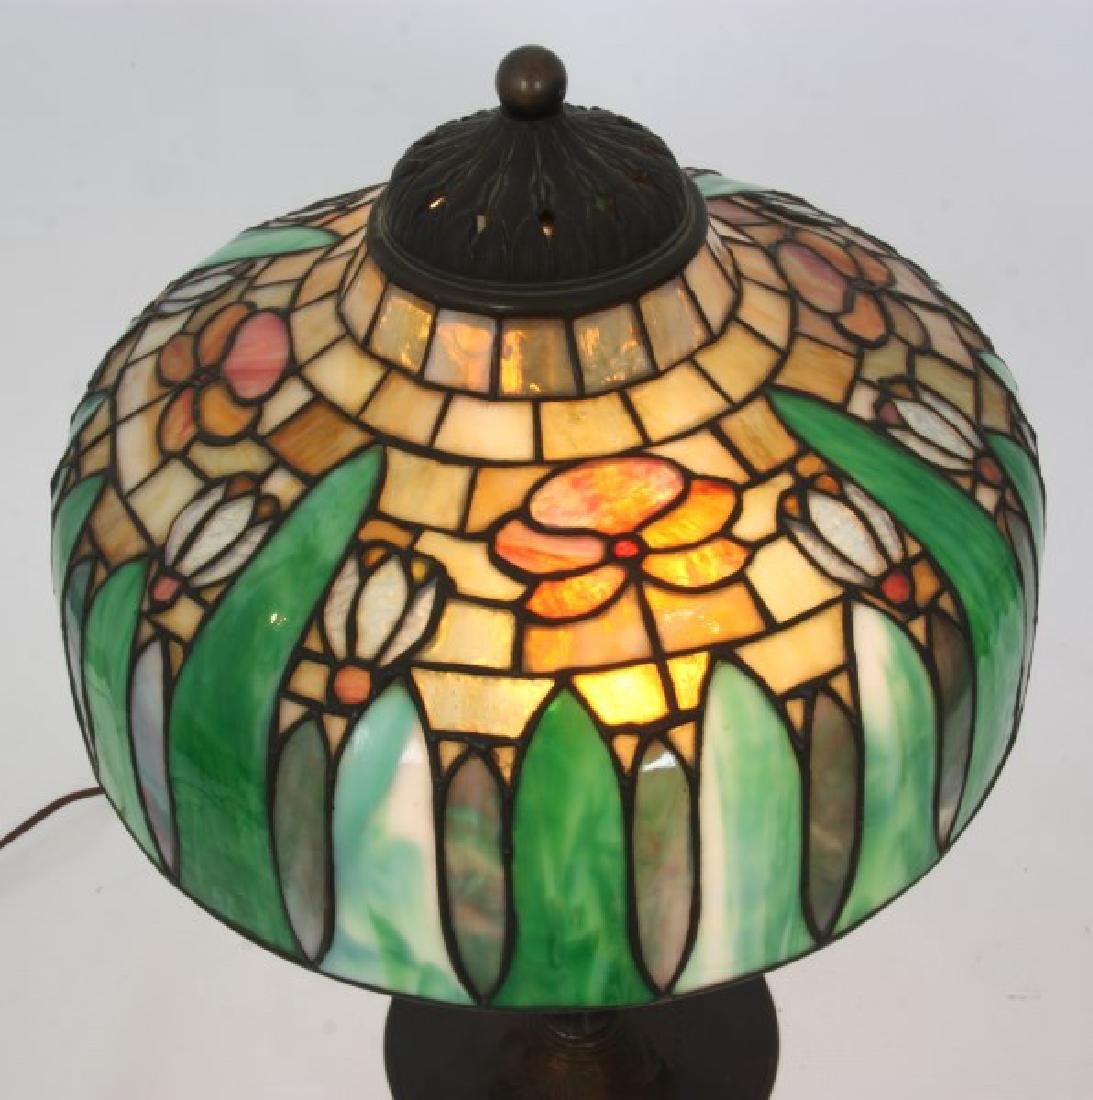 14 in. Signed H.G. Cleveland Table Lamp - 2